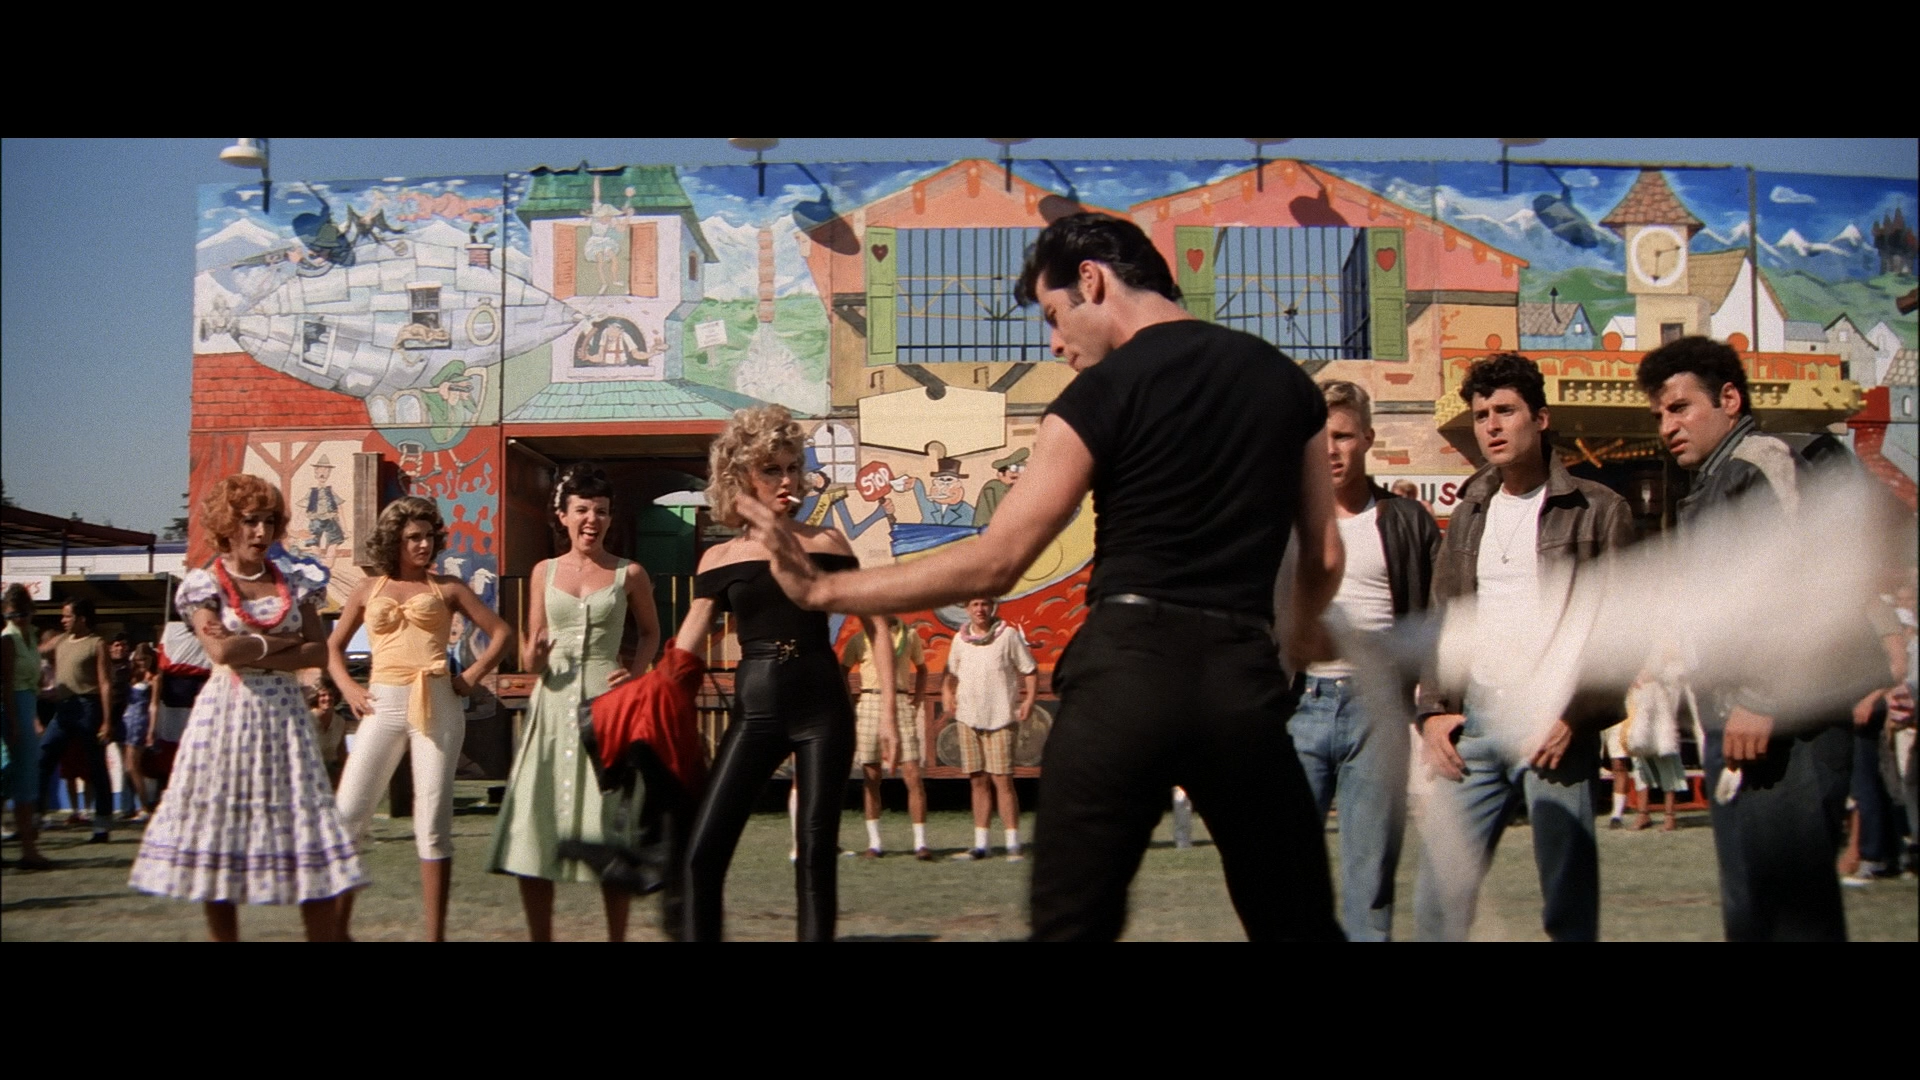 Grease The Movie Wallpaper Images & Pictures - Becuo